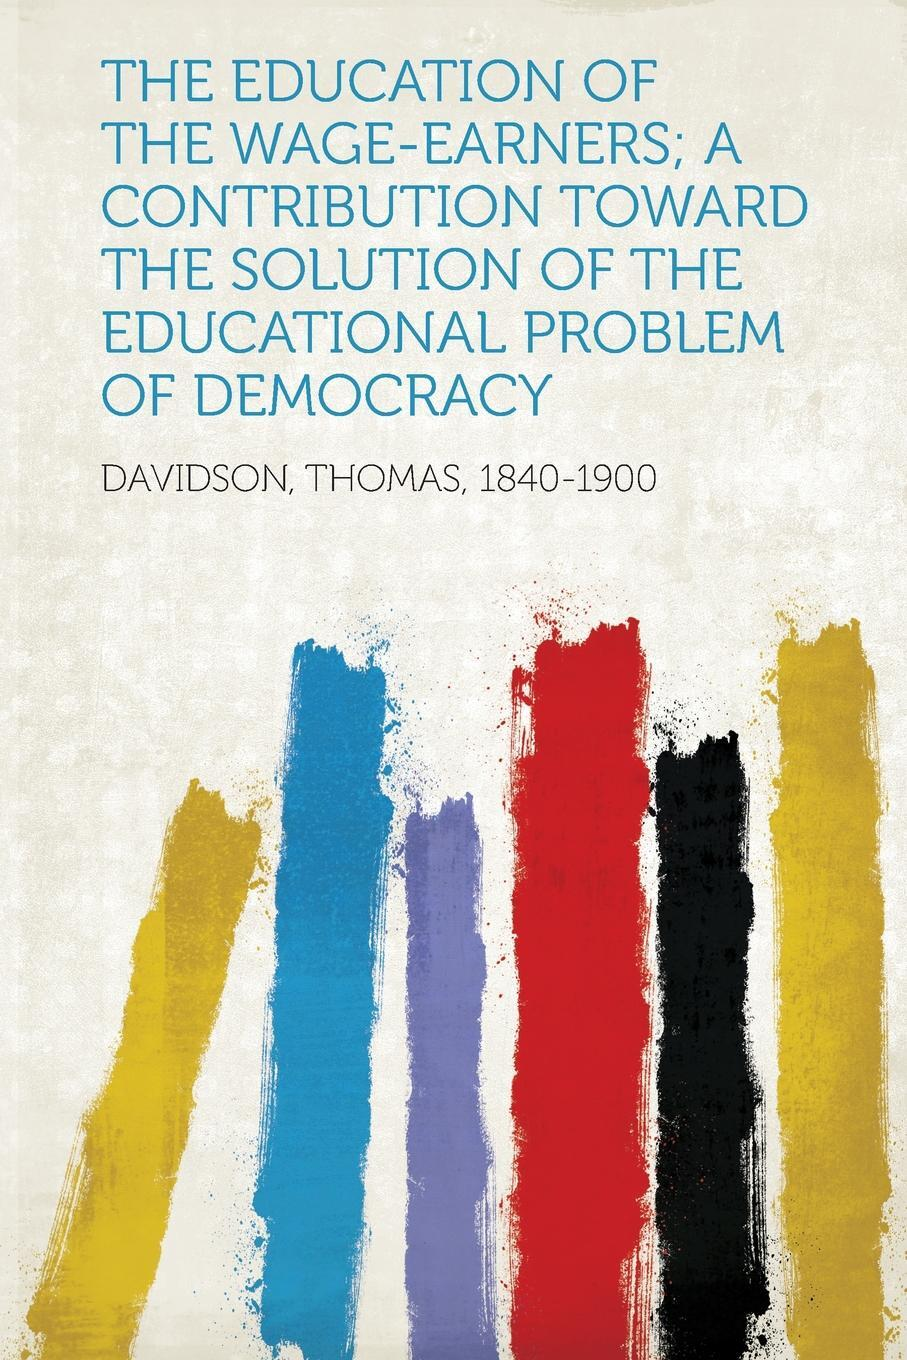 The Education of the Wage-Earners; a Contribution Toward the Solution of the Educational Problem of Democracy